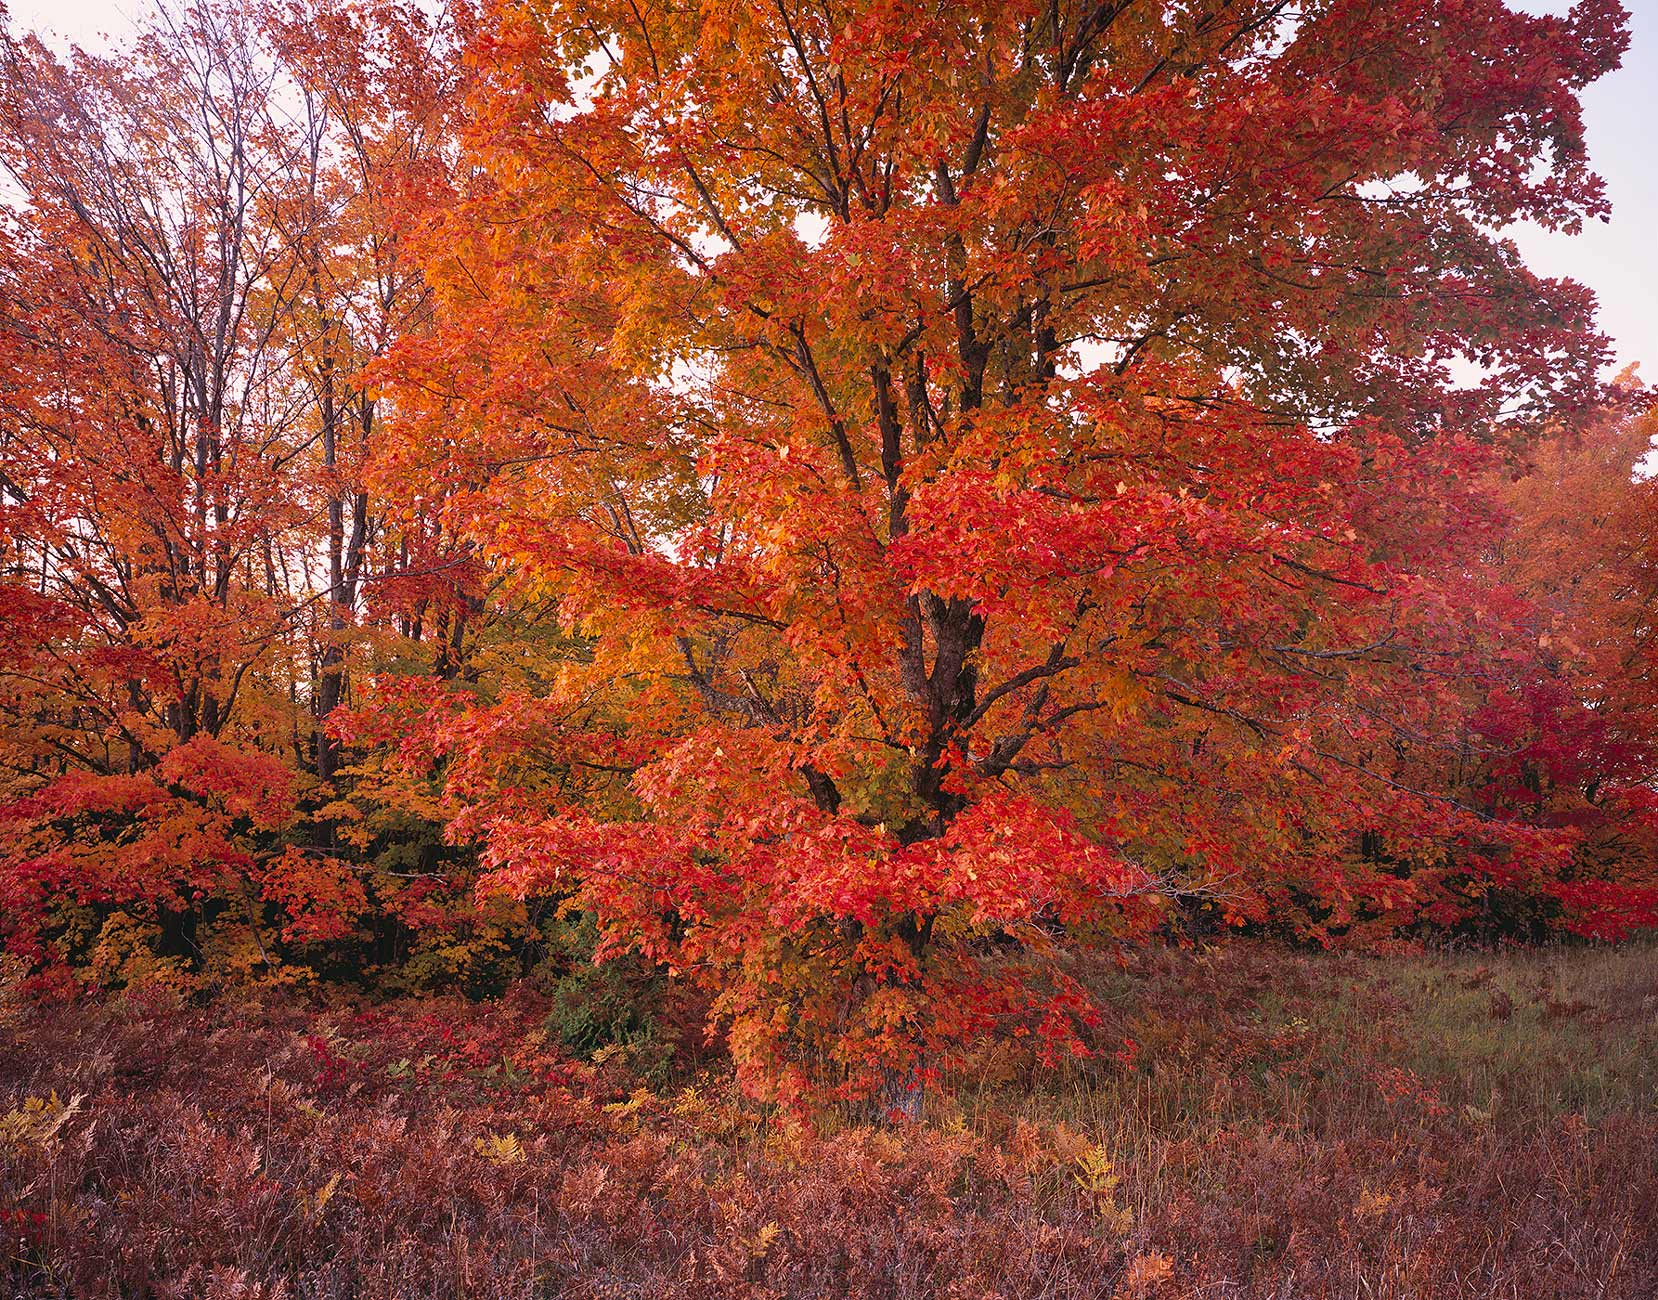 916 Scarlet Maple, Hiawatha National Forest, Michigan